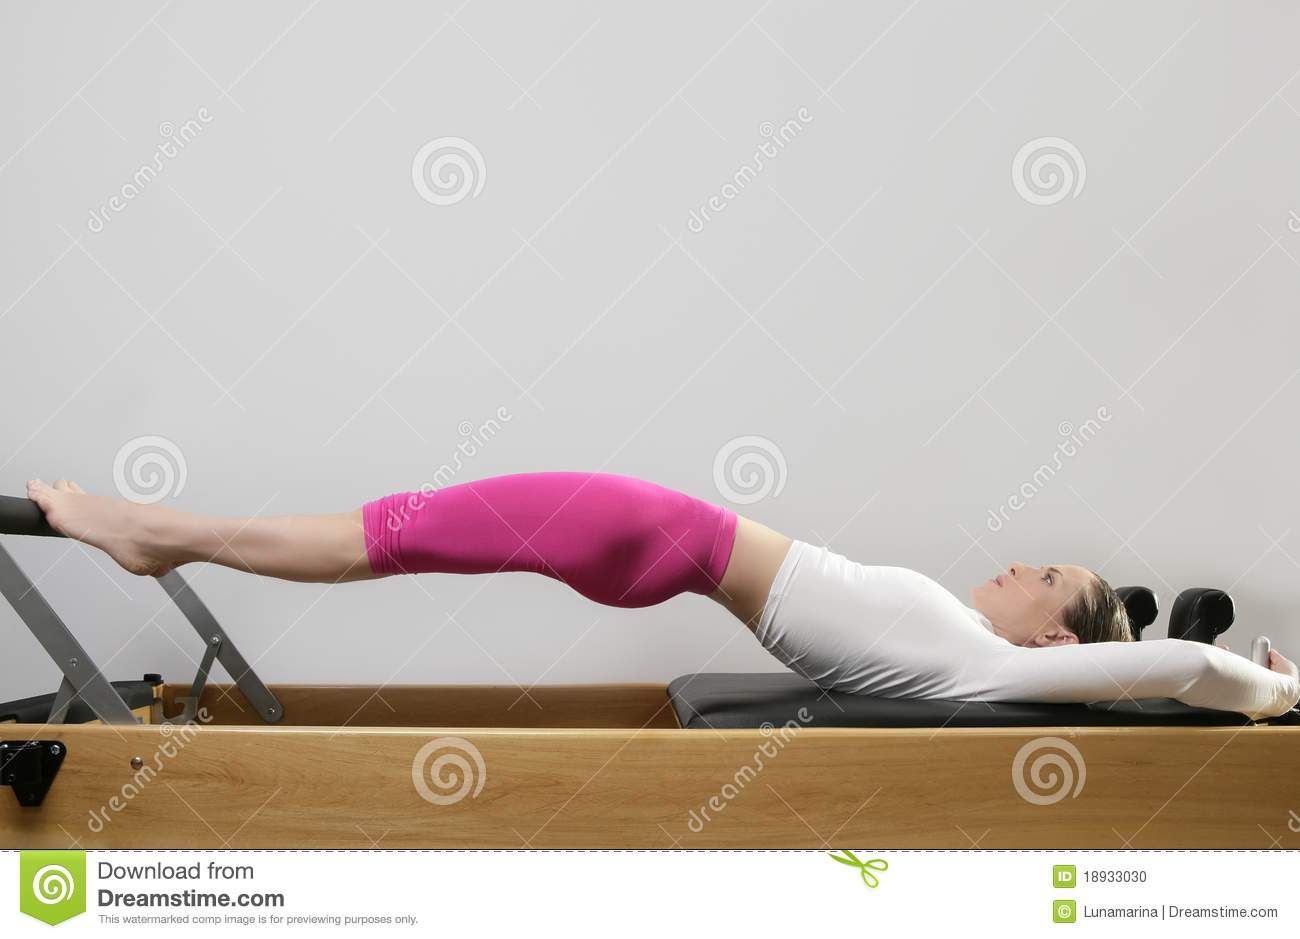 Gym woman pilates stretching sport in reformer bed stock for Gimnasio pilates